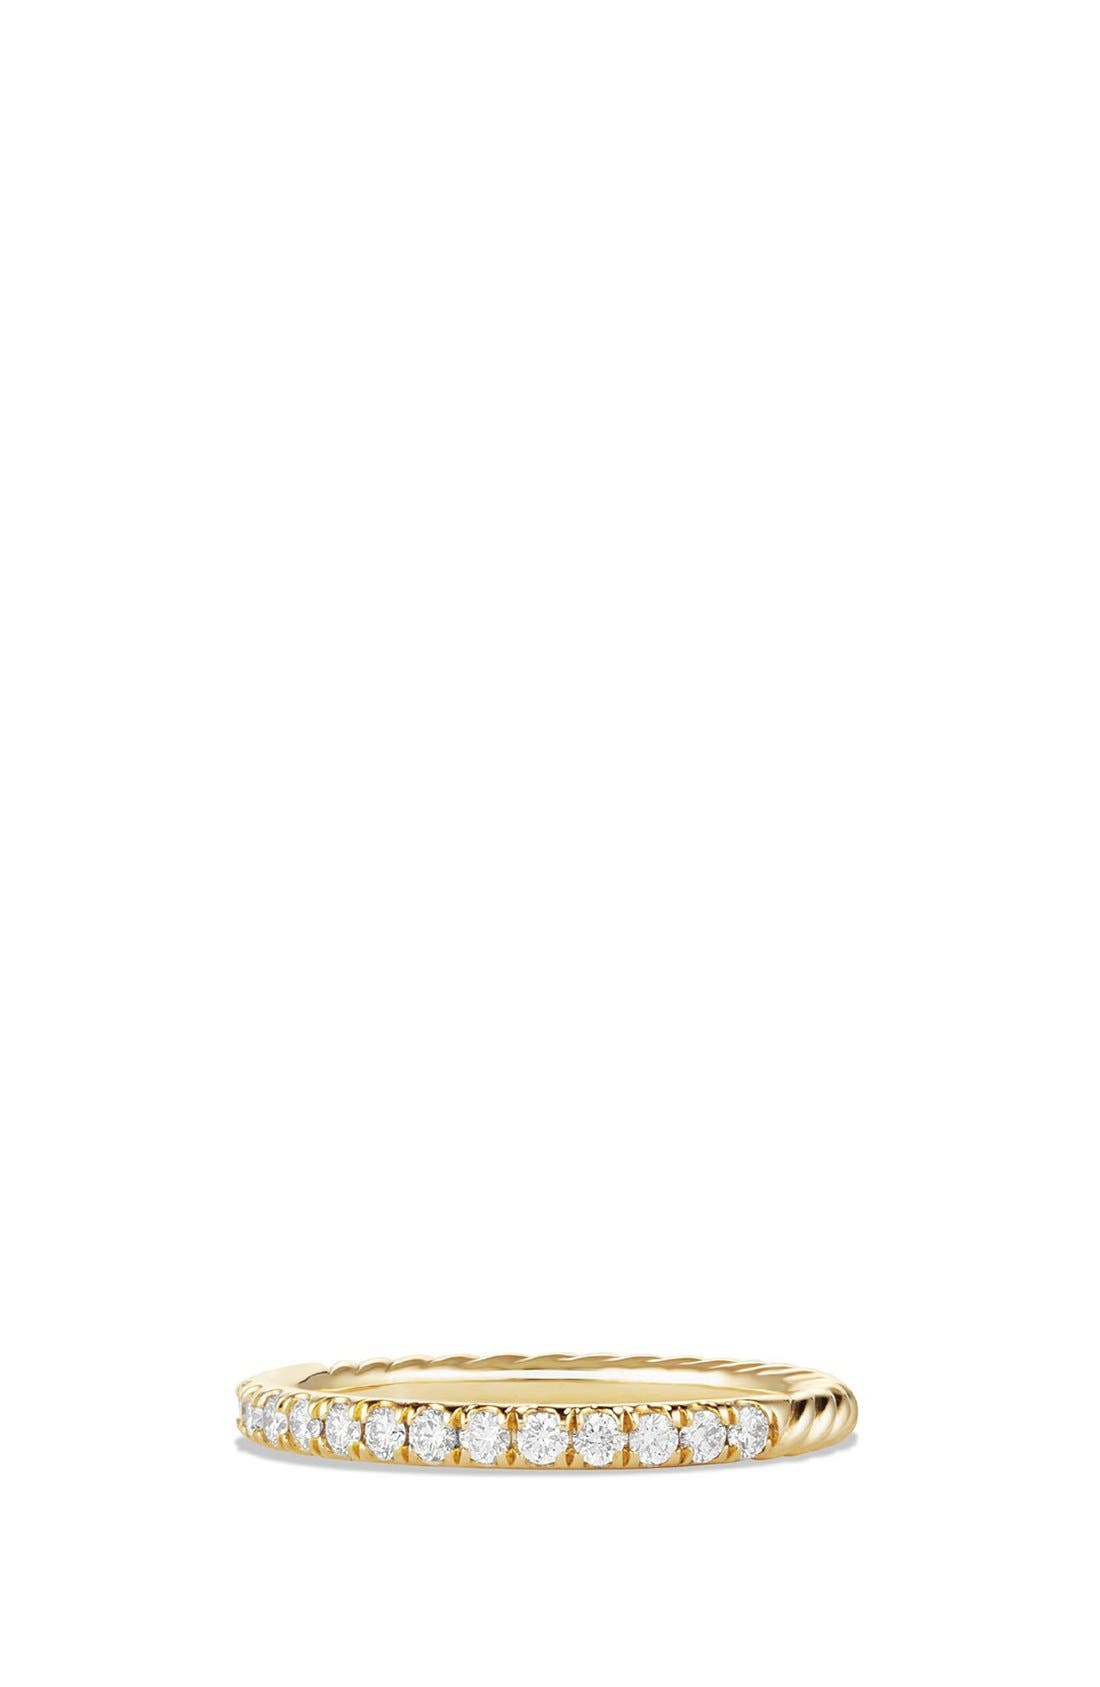 David Yurman 'Cable' Ring with Diamonds in 18K Gold